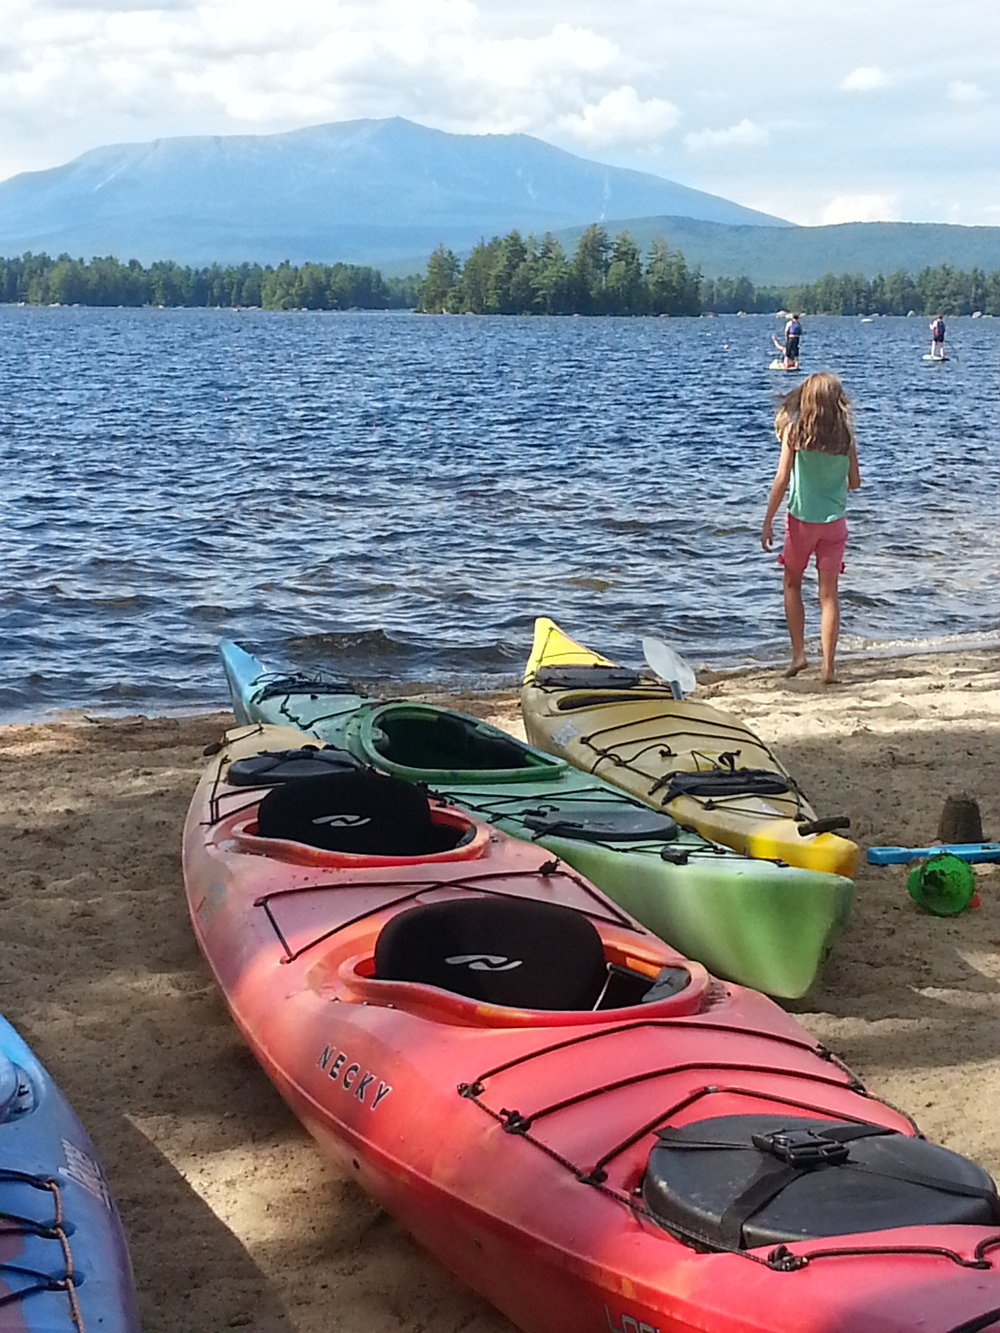 We ate lunch just up from this view! Lake Millinocket with Mt. Katahdin in the background.  Breathtaking!